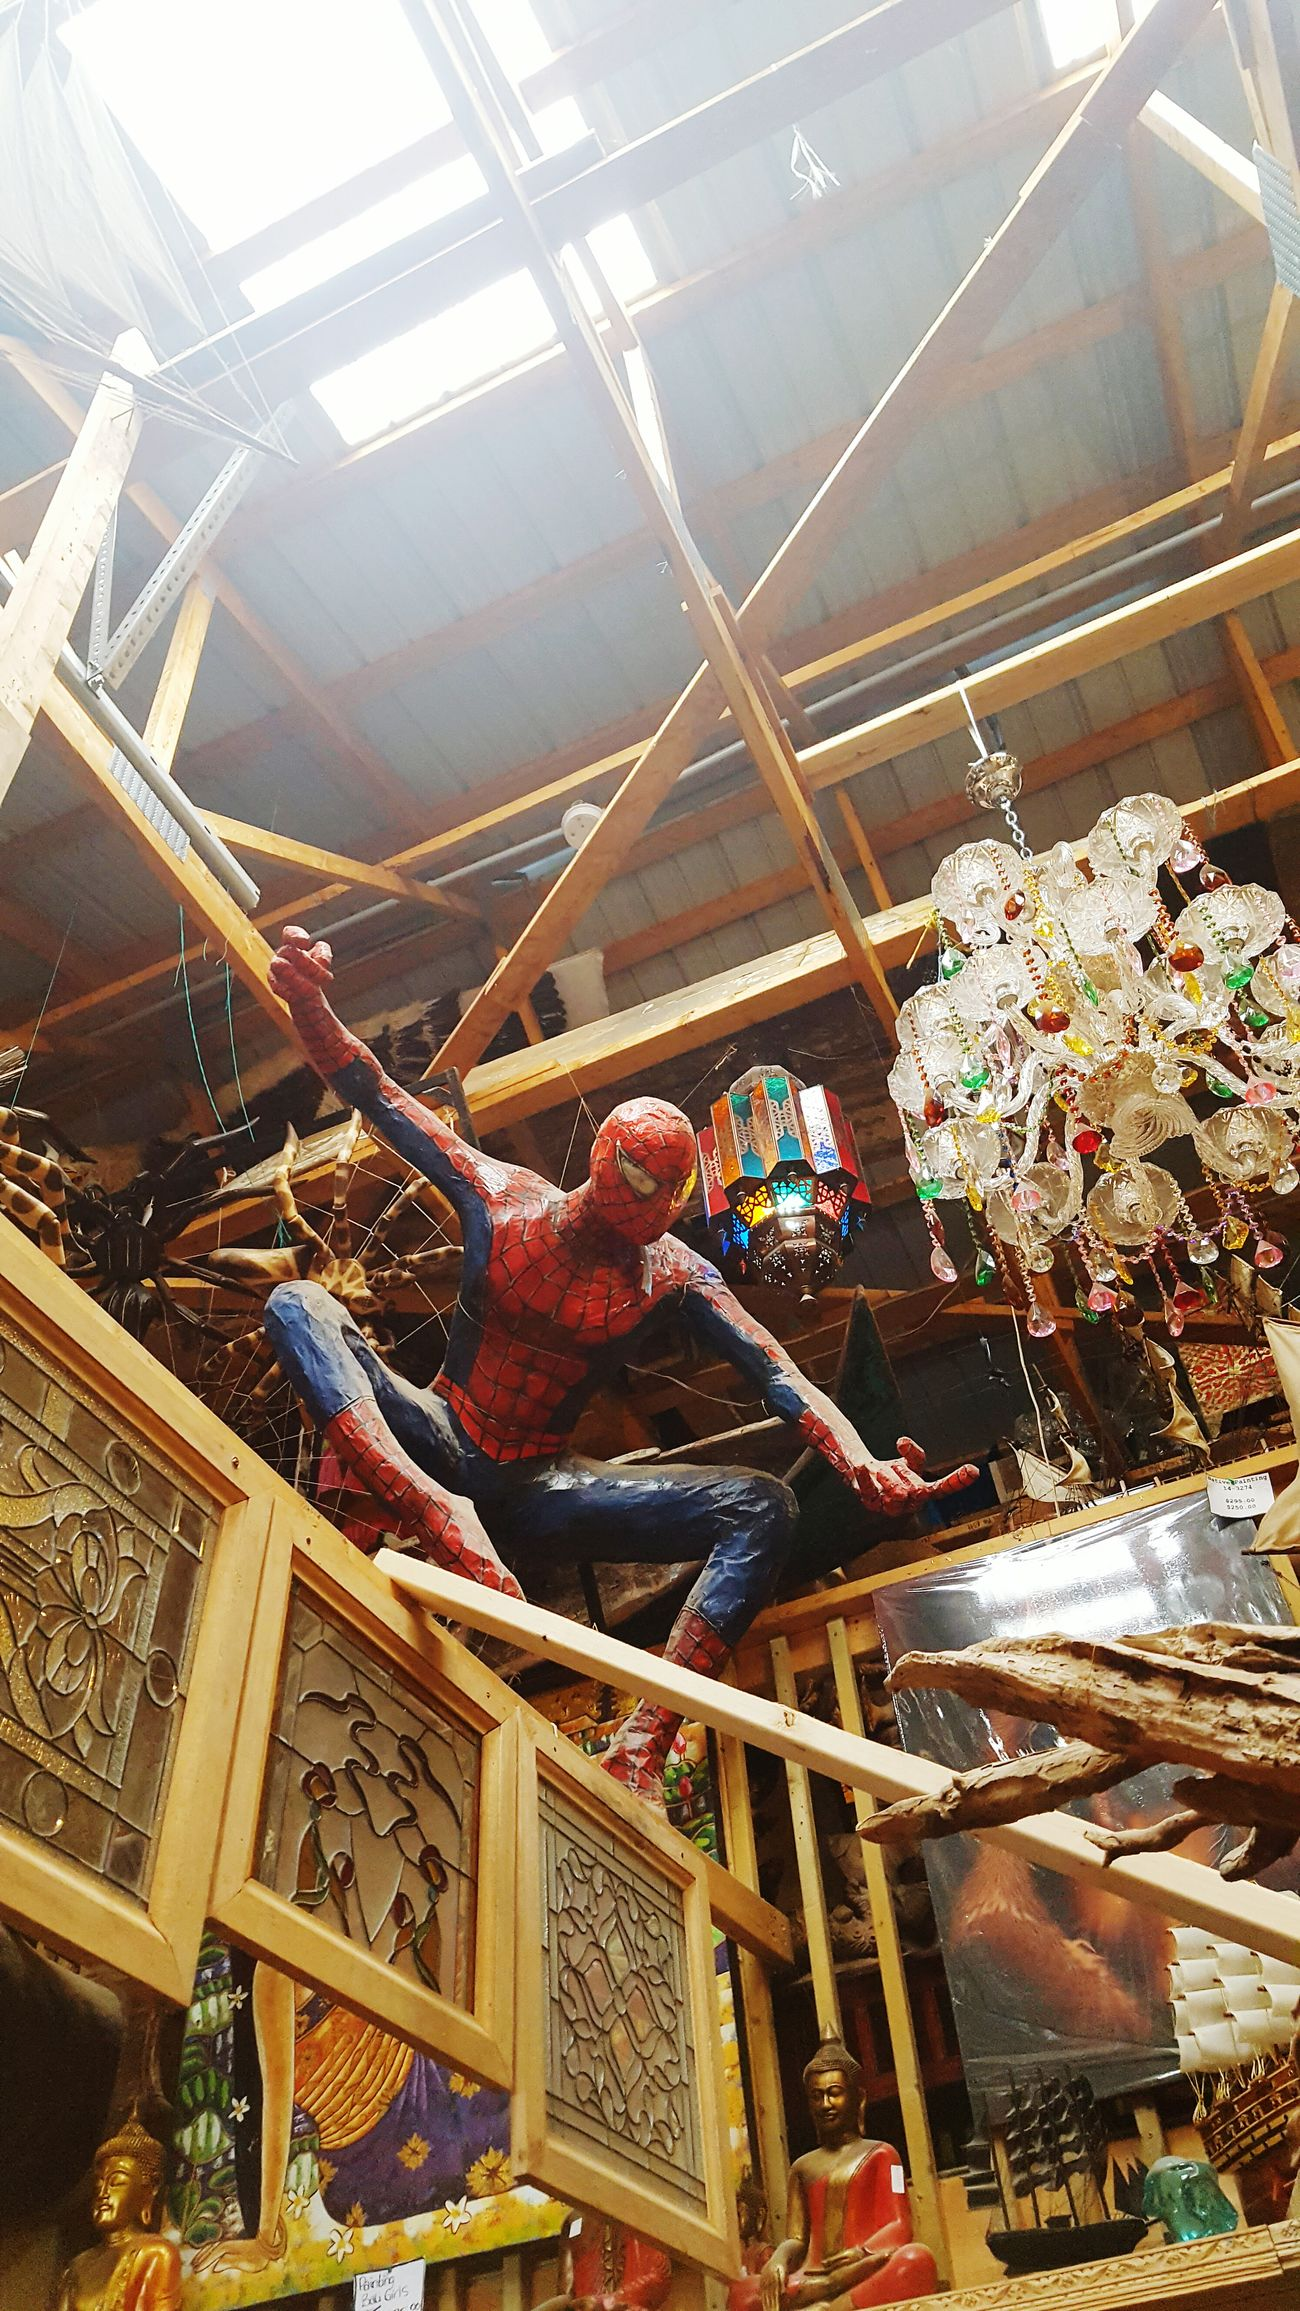 Here comes the Spiderman. I wanted everything. Spiderman Primitive Designs Ecclectic Lifeisbeautiful Check This Out Port Hope